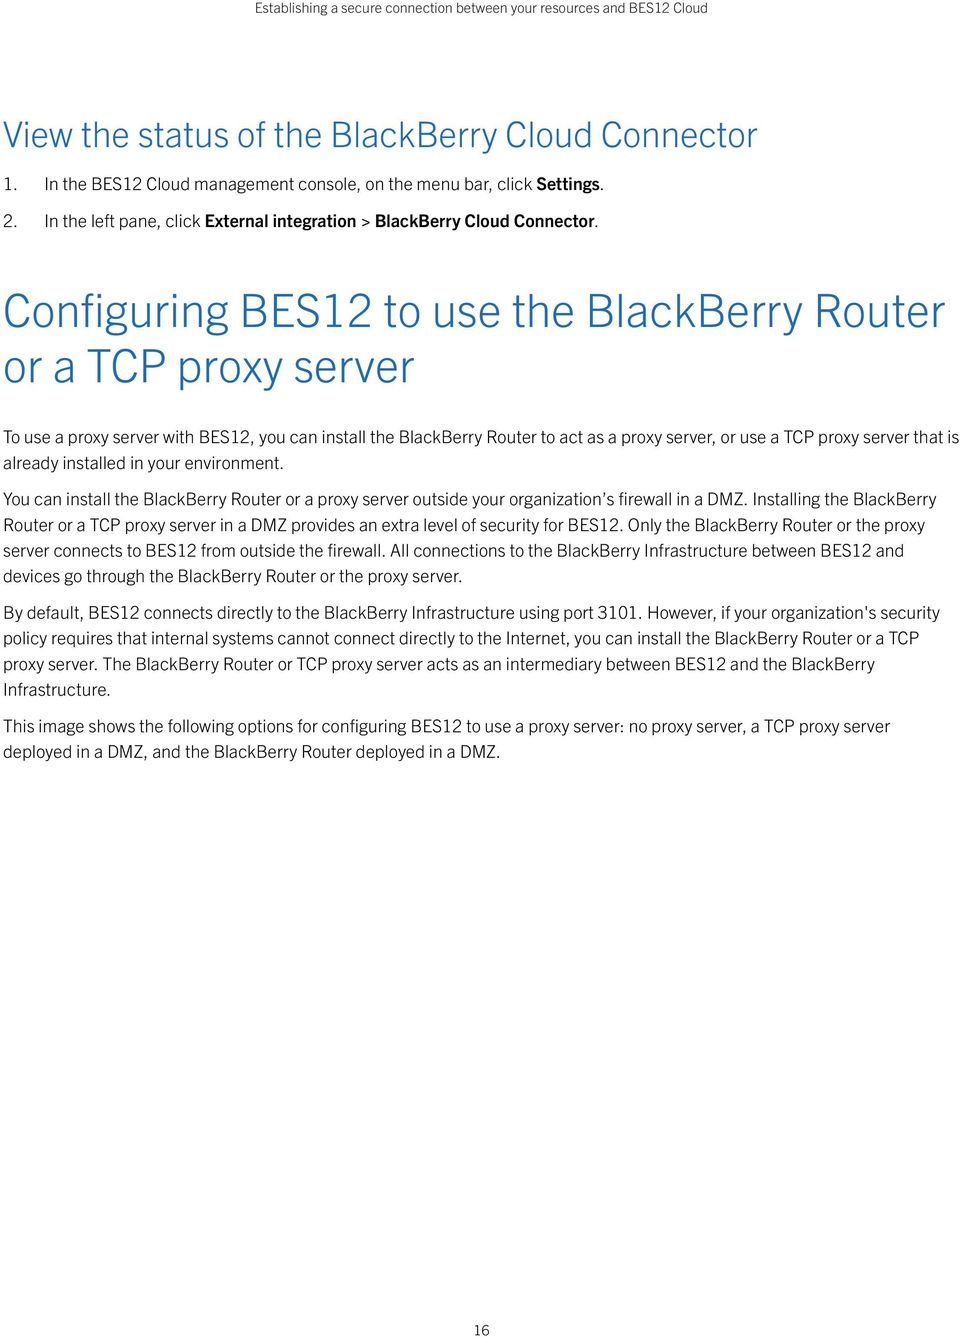 Configuring BES12 to use the BlackBerry Router or a TCP proxy server To use a proxy server with BES12, you can install the BlackBerry Router to act as a proxy server, or use a TCP proxy server that